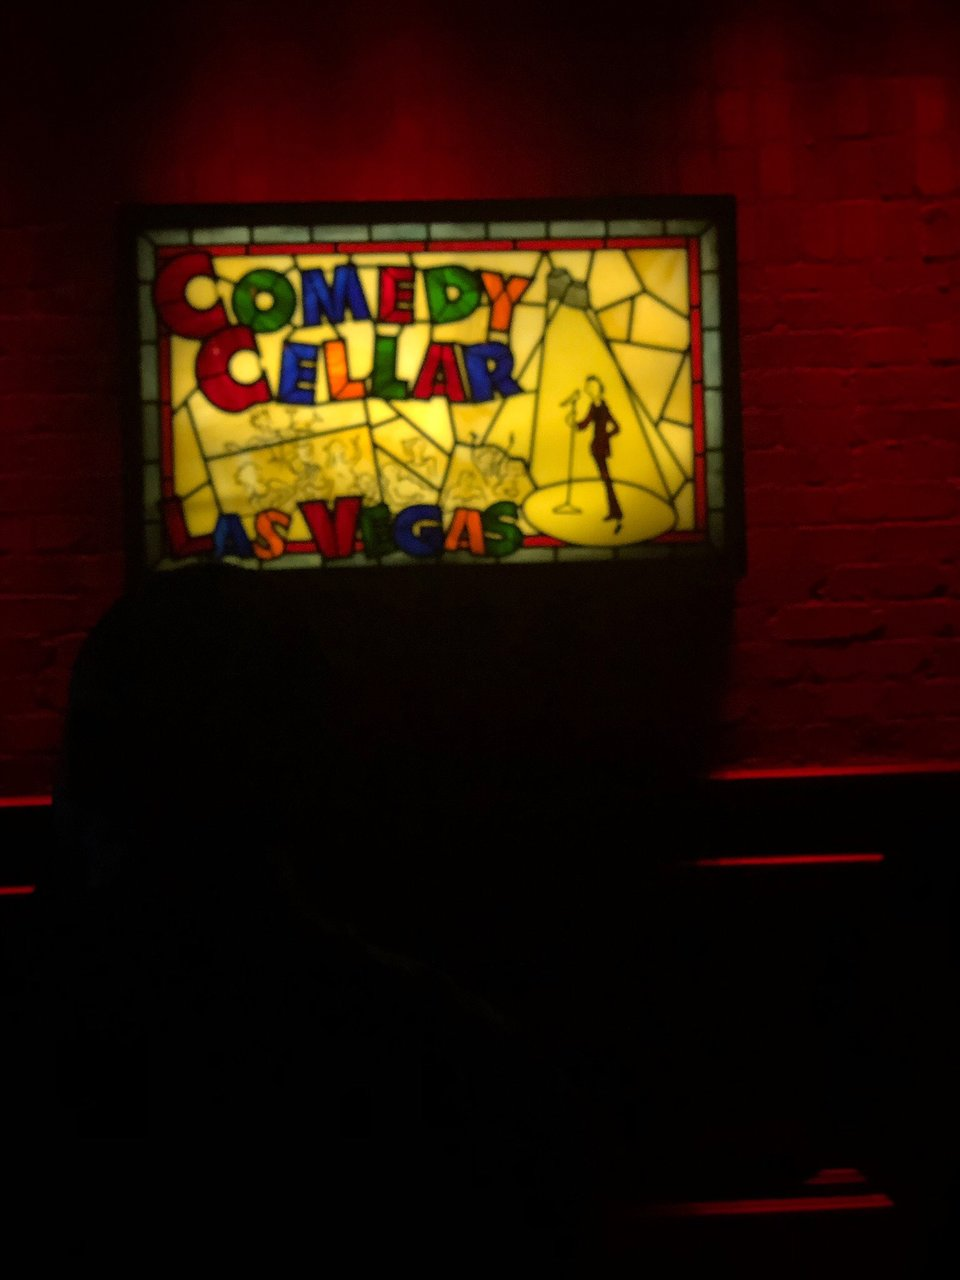 Comedy Cellar Las Vegas 2020 All You Need To Know Before You Go With Photos Tripadvisor